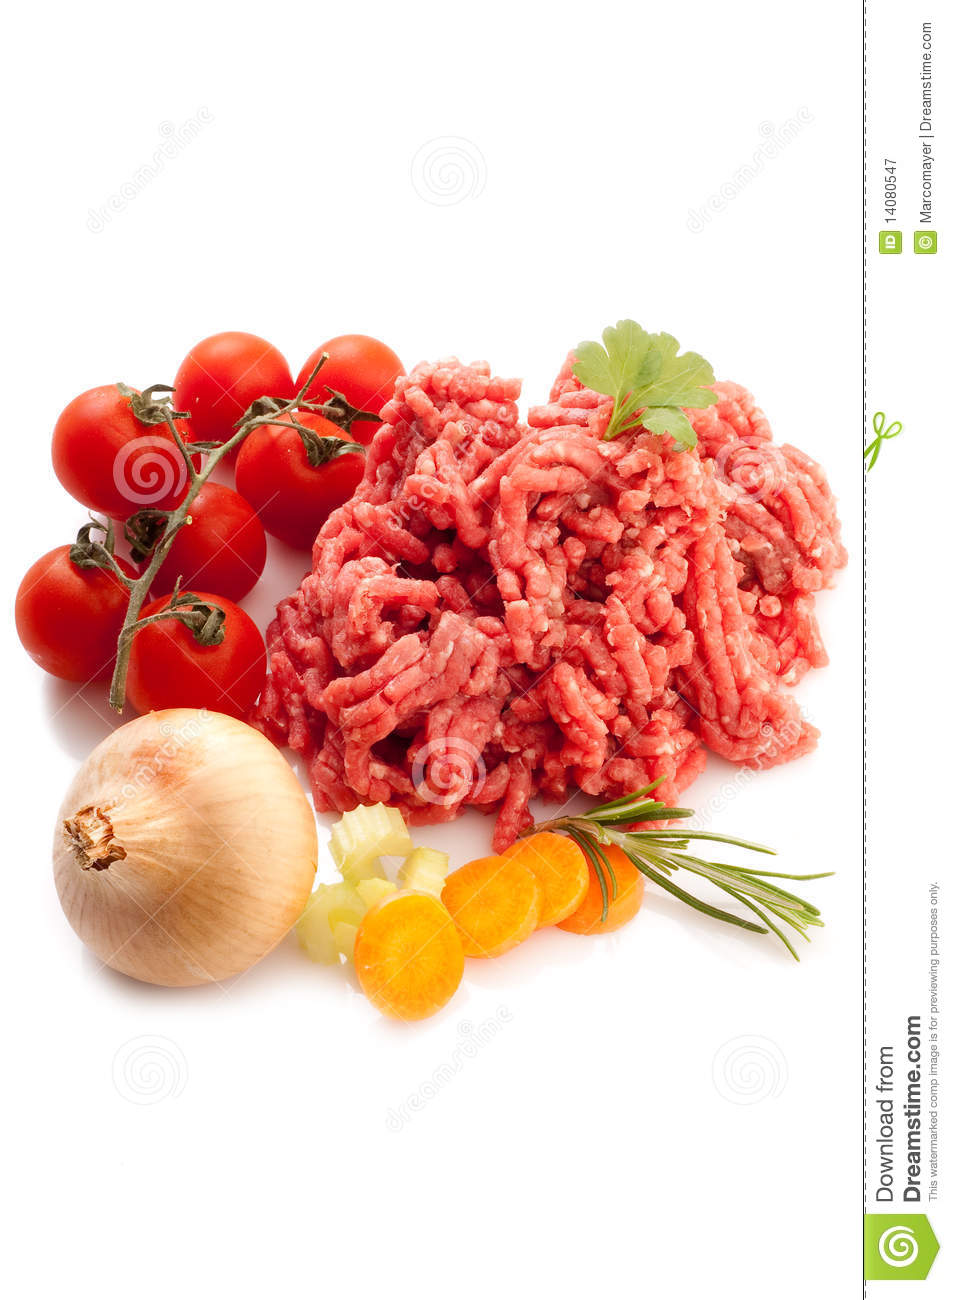 Meat Loaf With Ingredients Royalty Free Stock Photography   Image